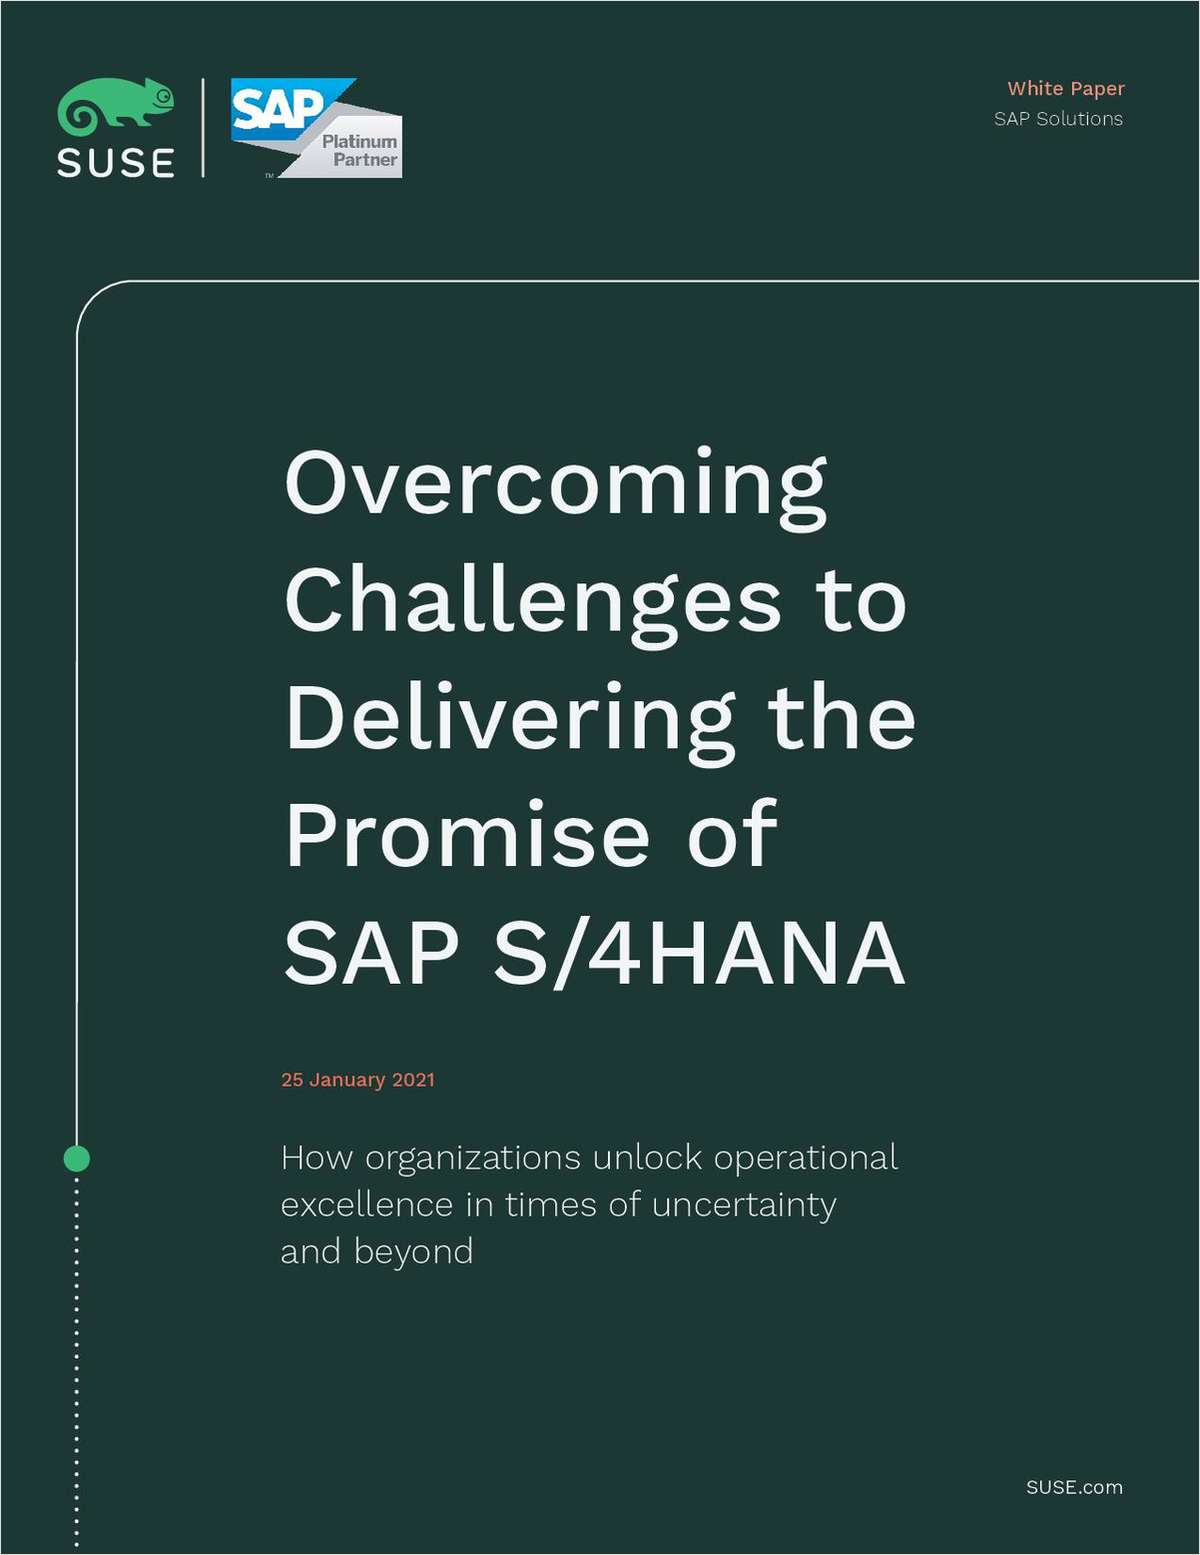 Overcoming Challenges to Delivering the Promise of SAP S/4HANA